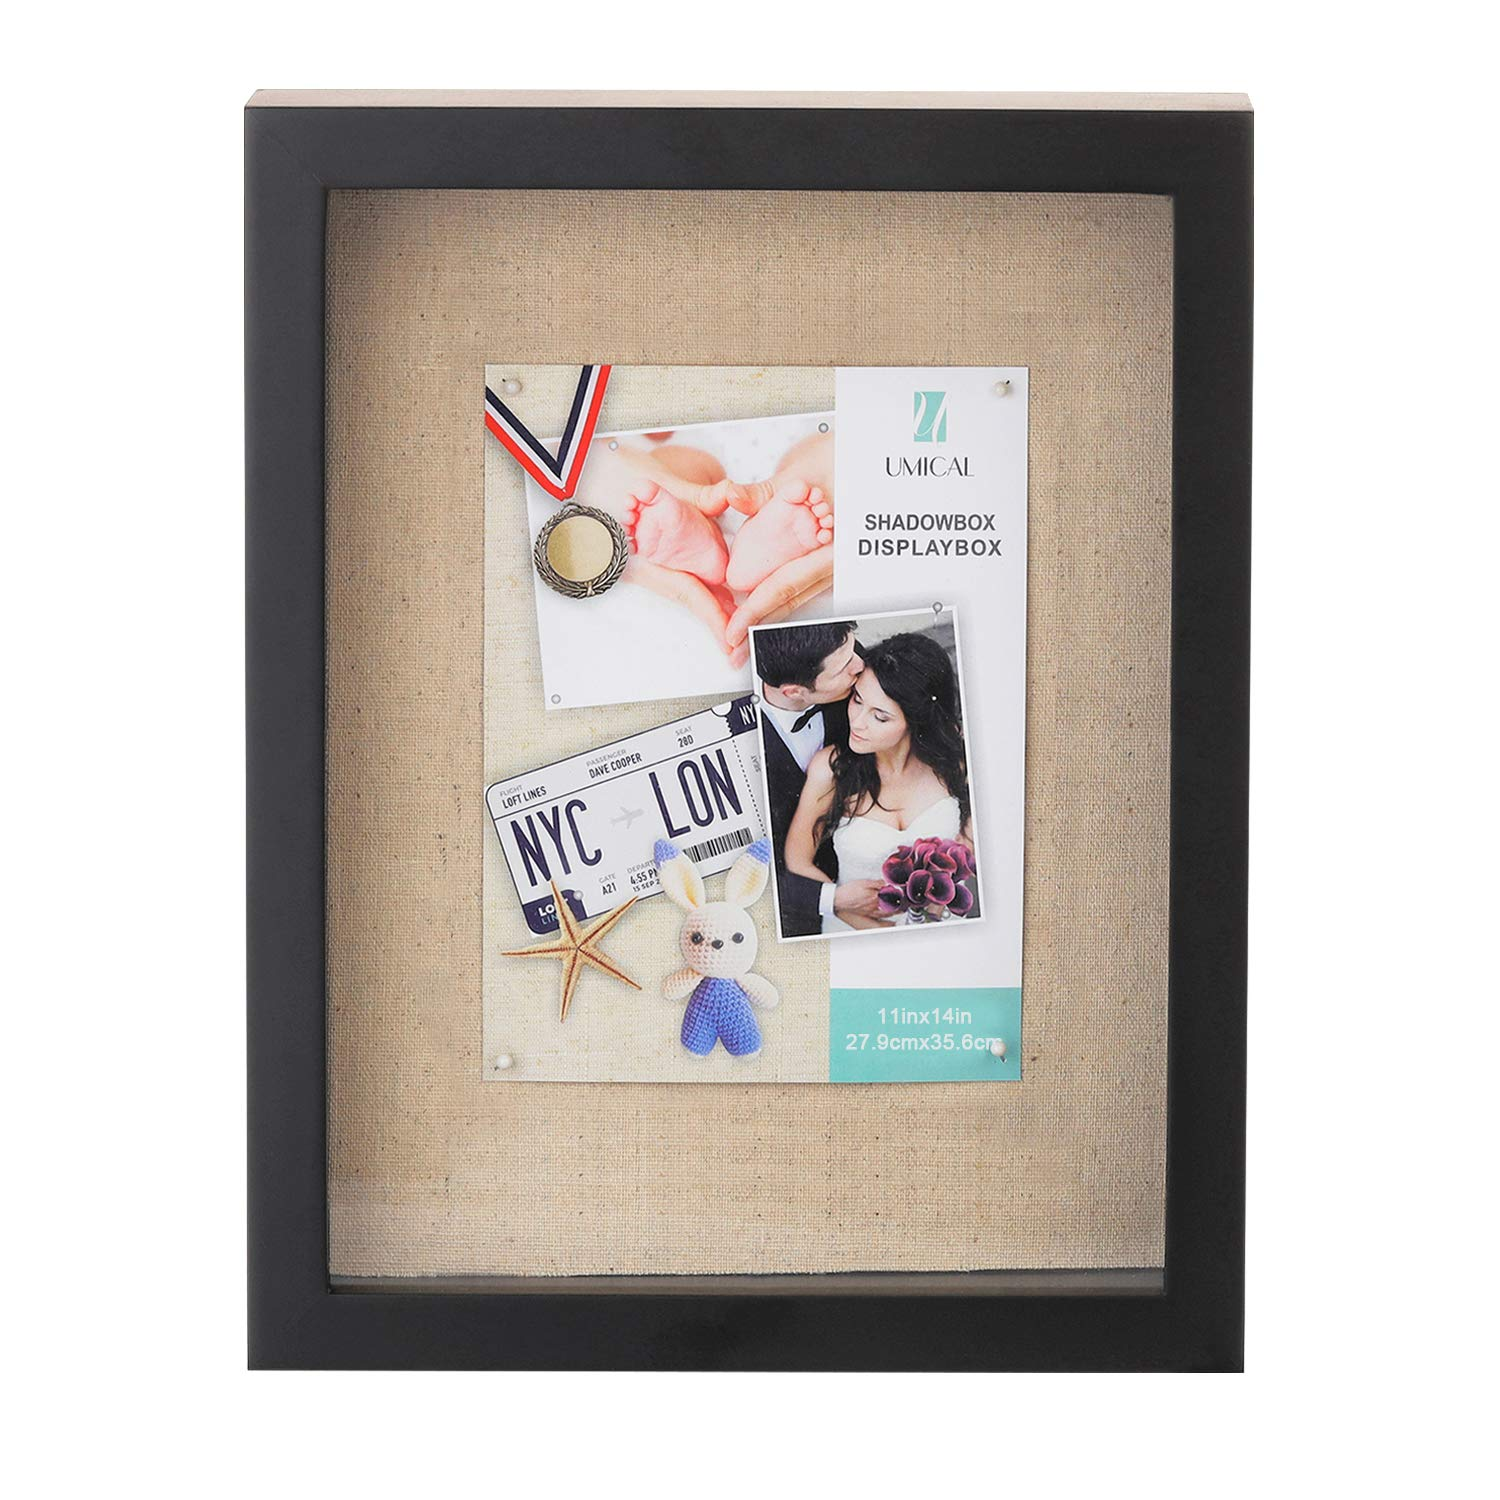 UMICAL 11x14 Shadow Box Display Case - Deep Shadowbox Picture Frame with Linen Board - 3D Showcase Keepsake Art Graduation Baby Wedding - Wall Hanging & Free Standing by UMICAL